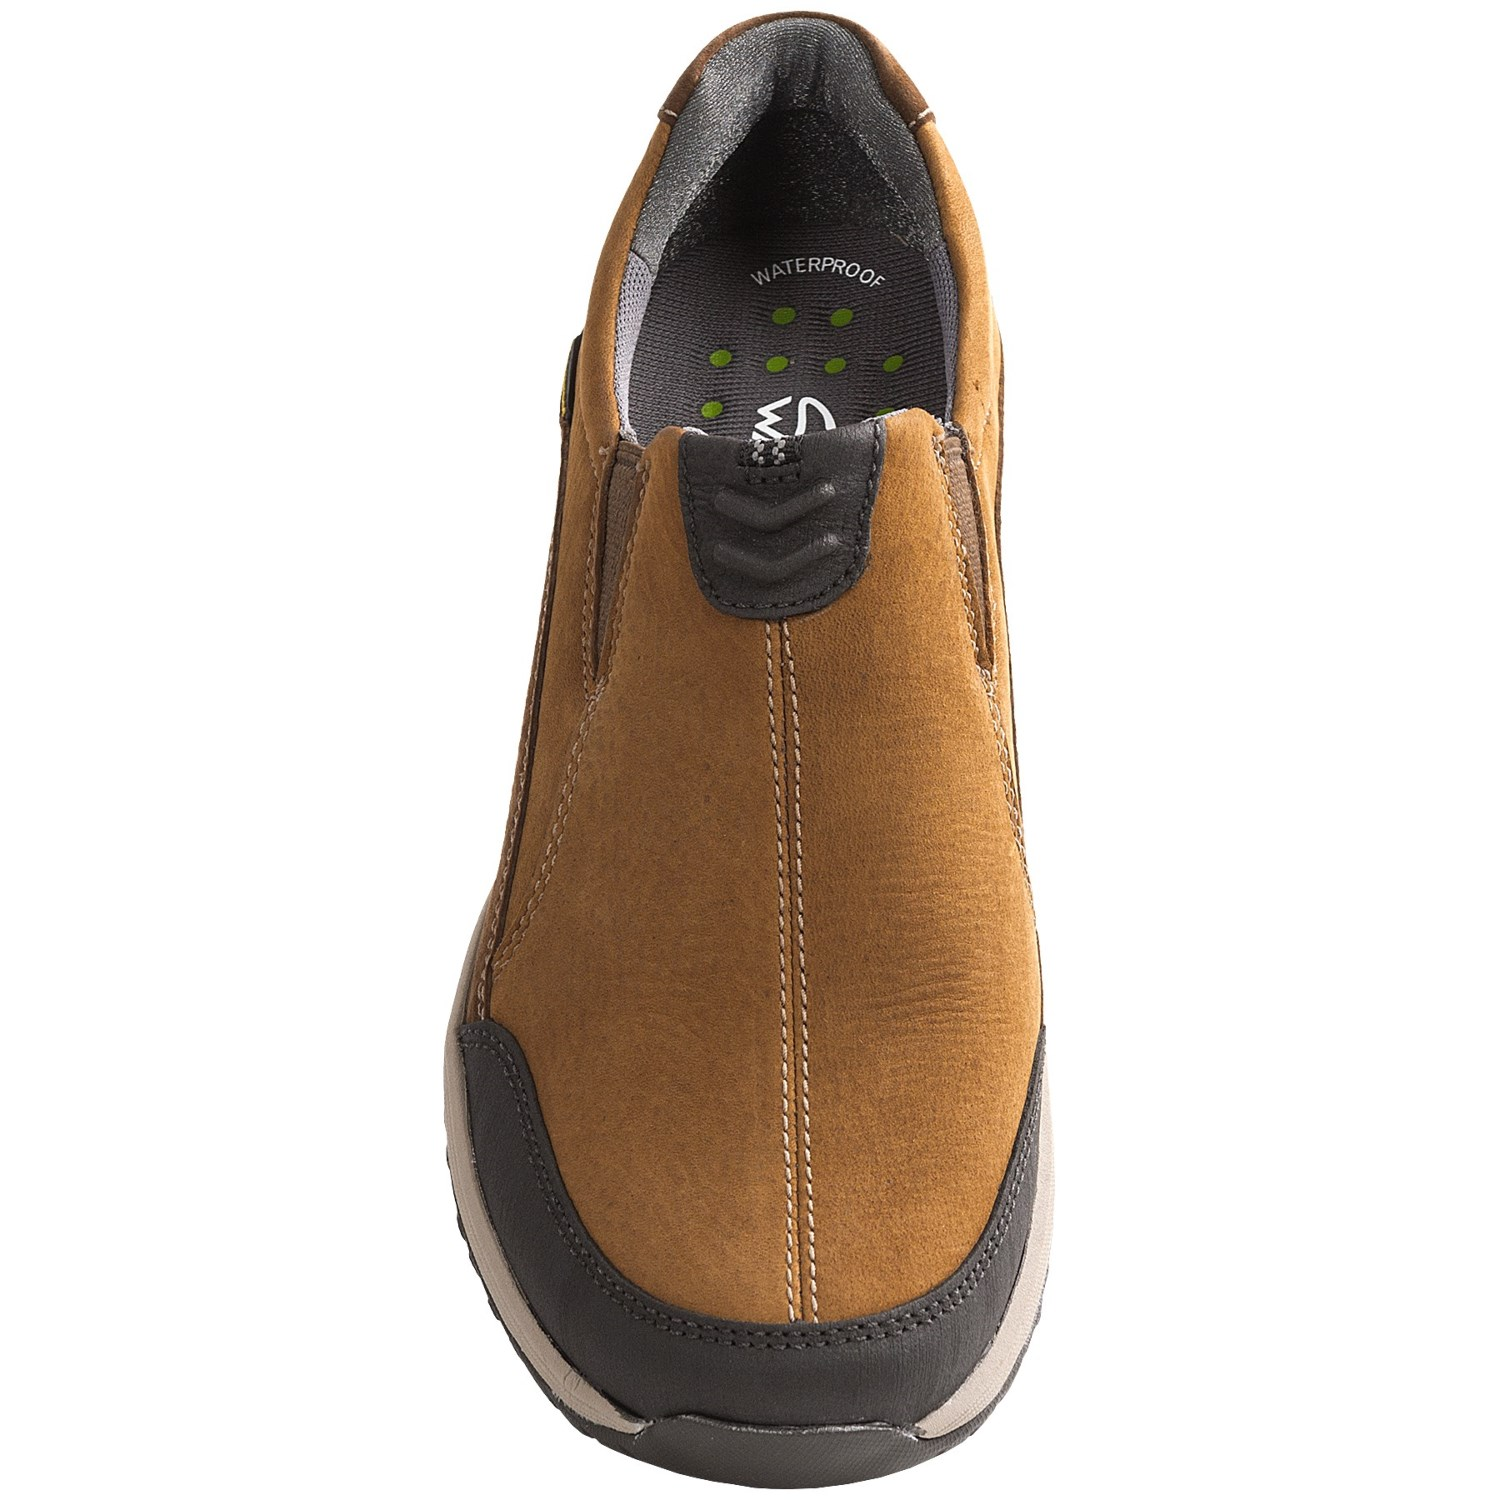 Clarks Shoes Clearance Mens